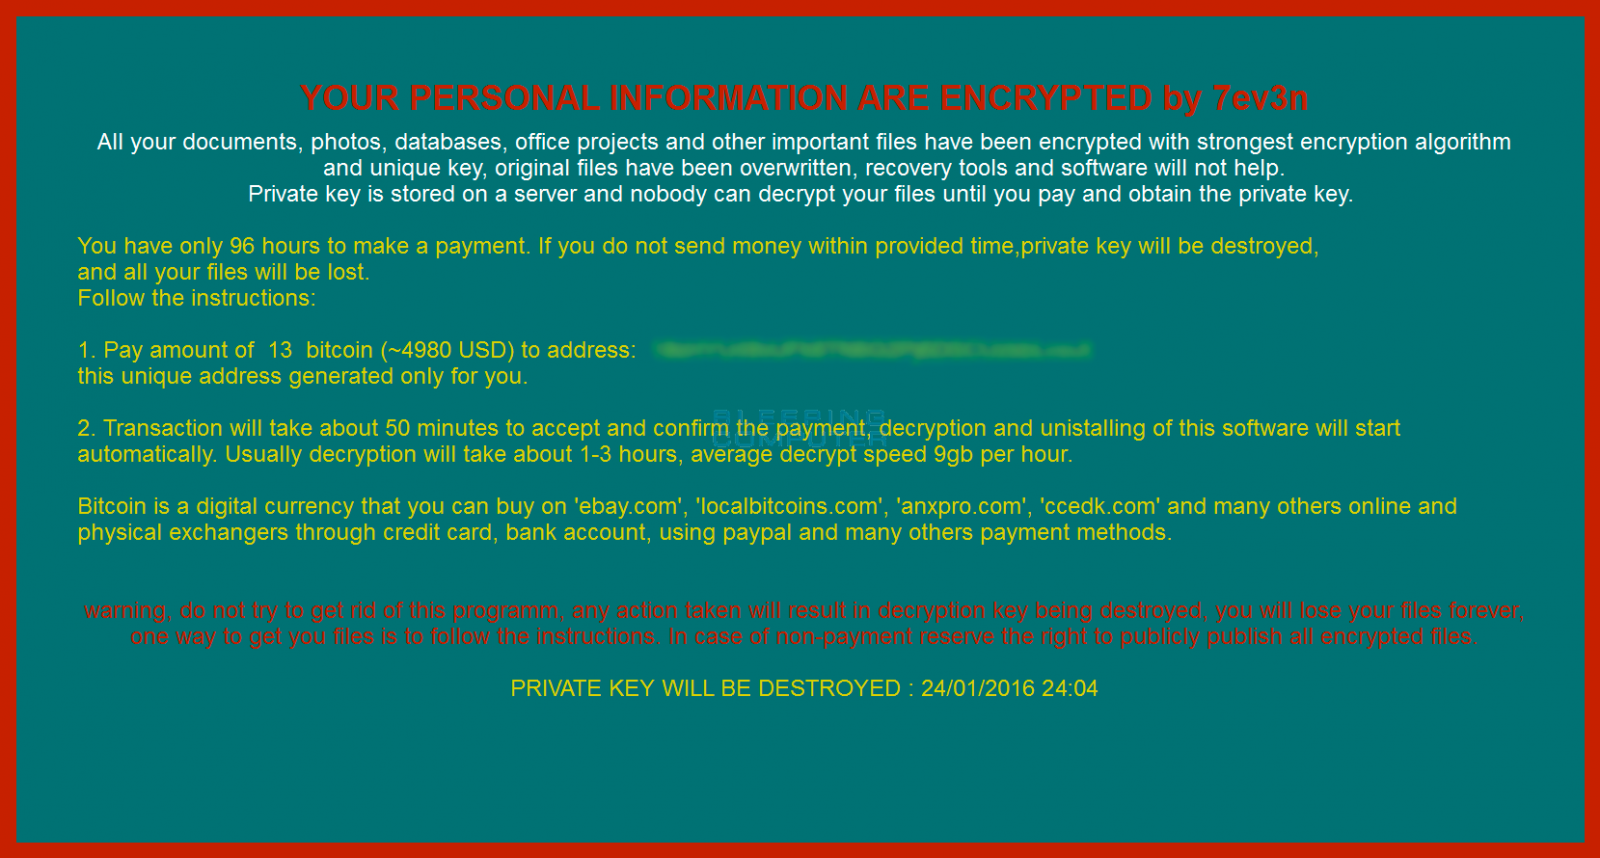 Ransomware bitcoin : Lowest fee trading platform